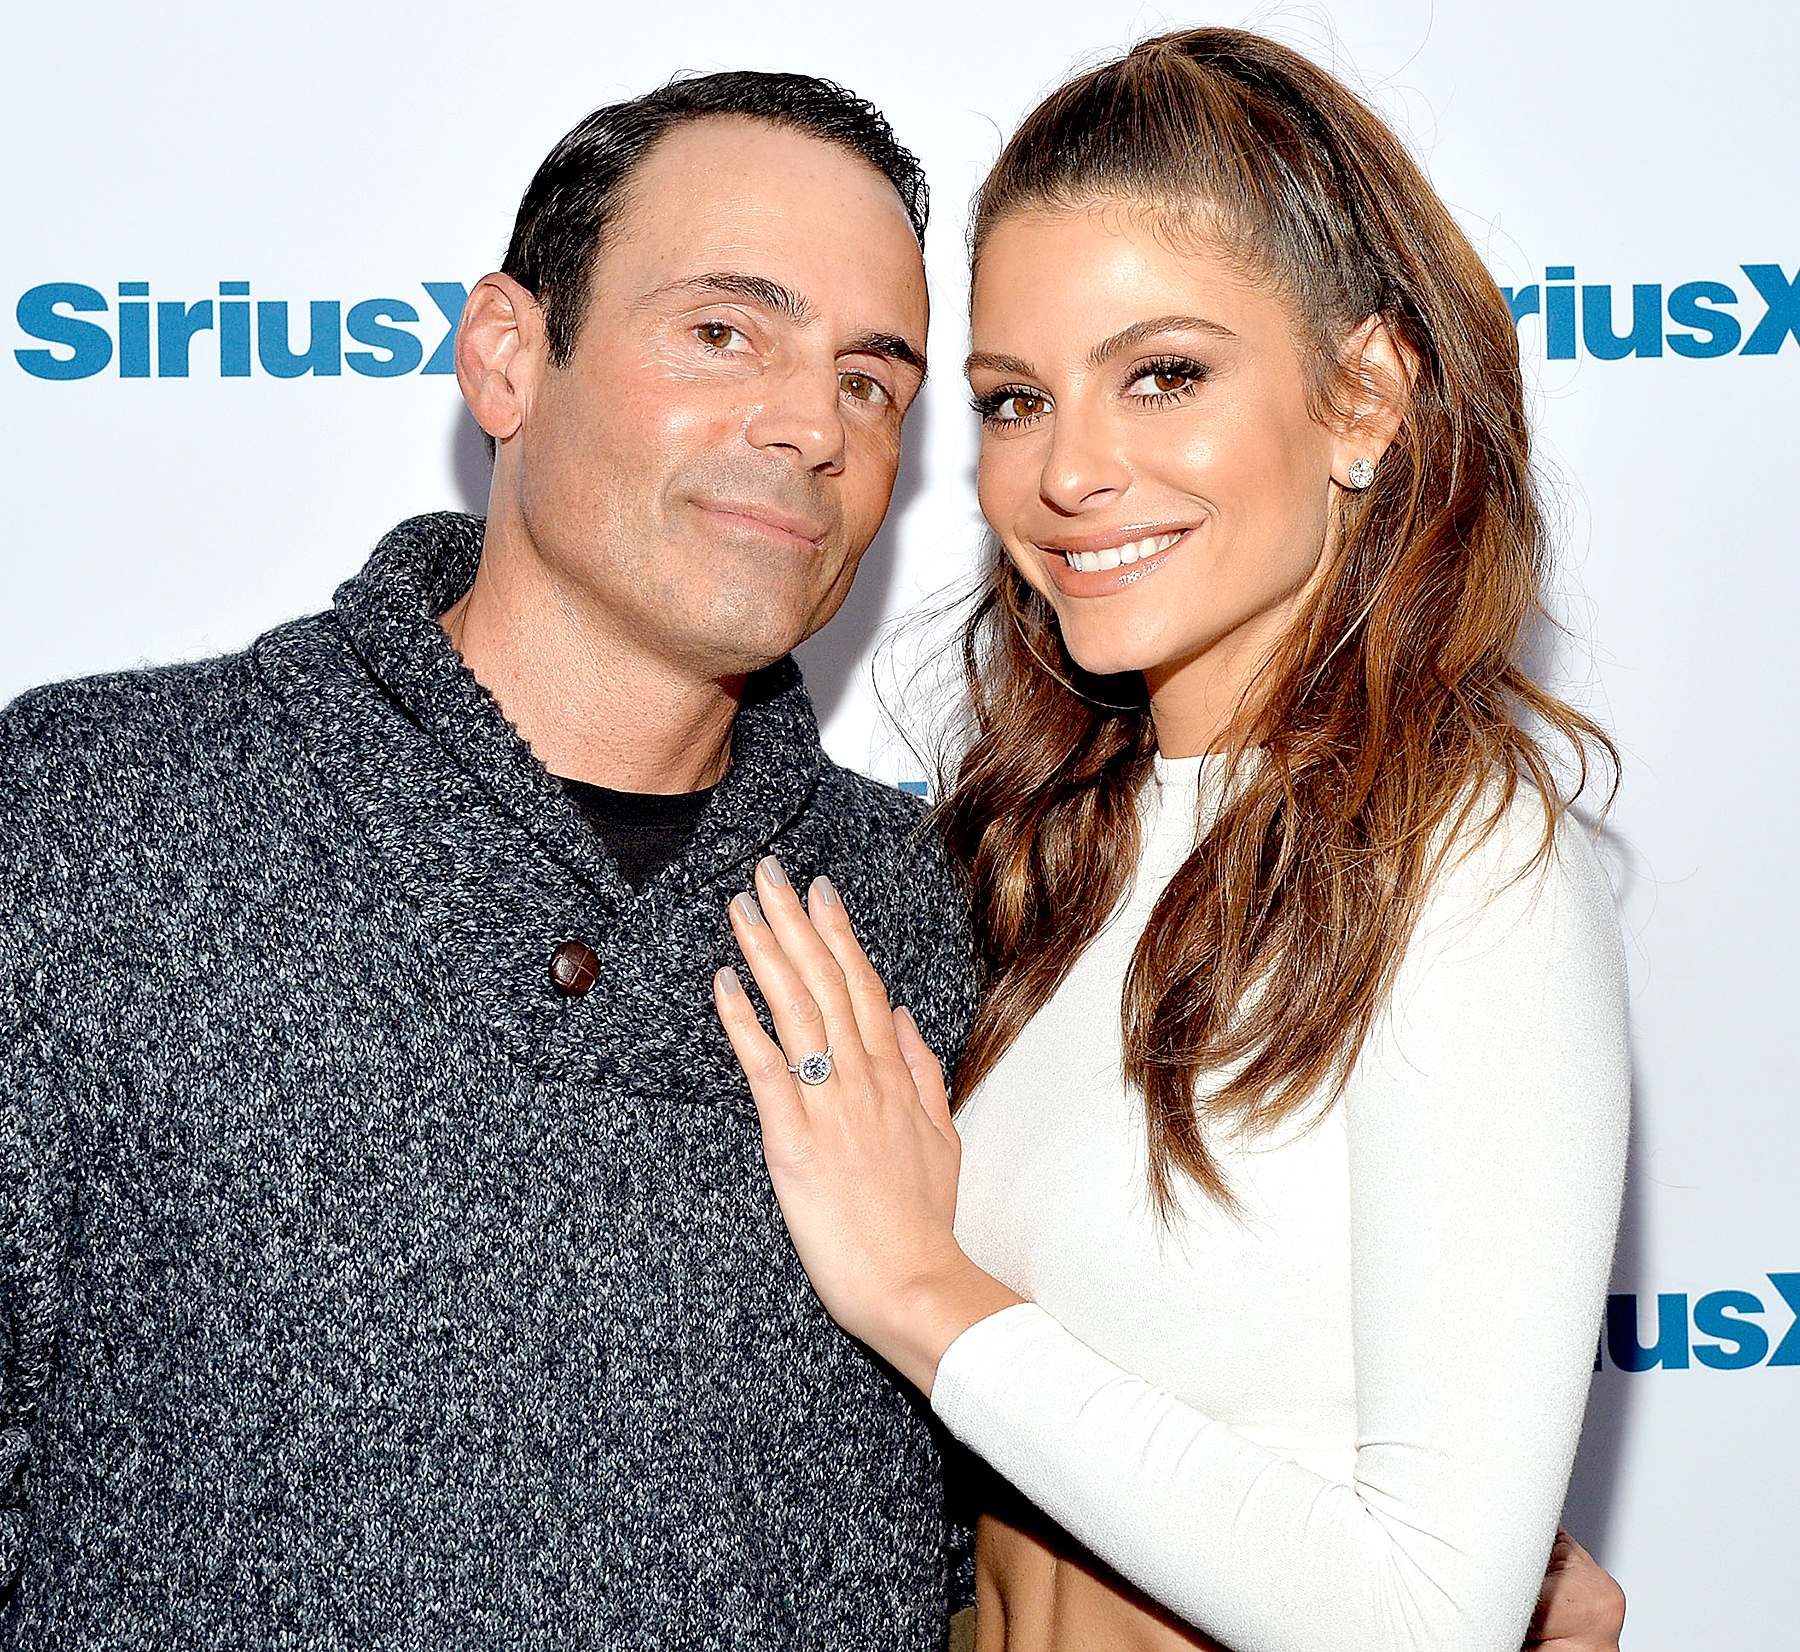 Maria Menounos and Keven Undergaro get engaged on